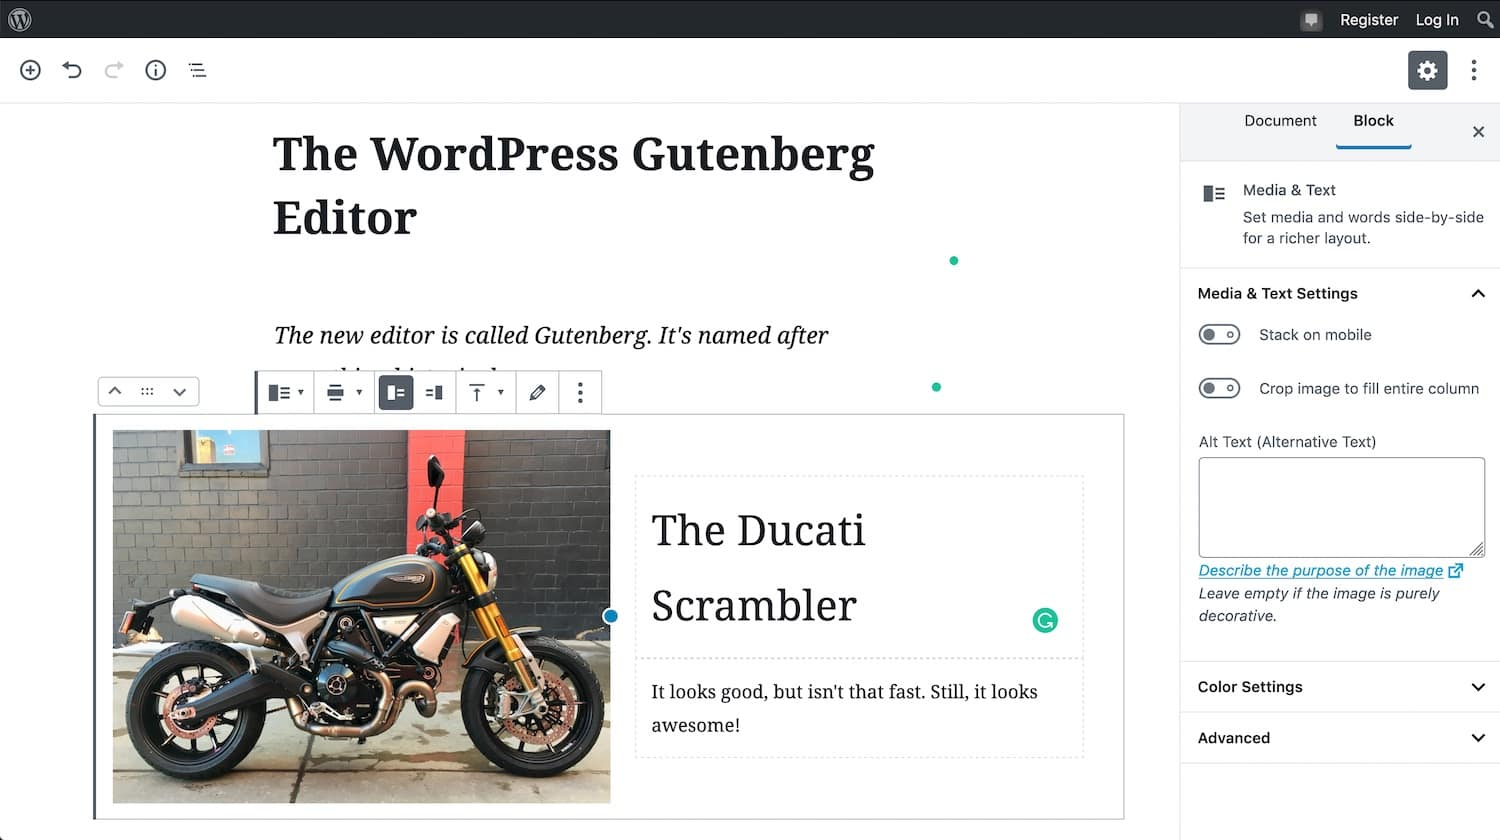 The Ghost editor isn't as good as Gutenberg, but it's much, much faster.